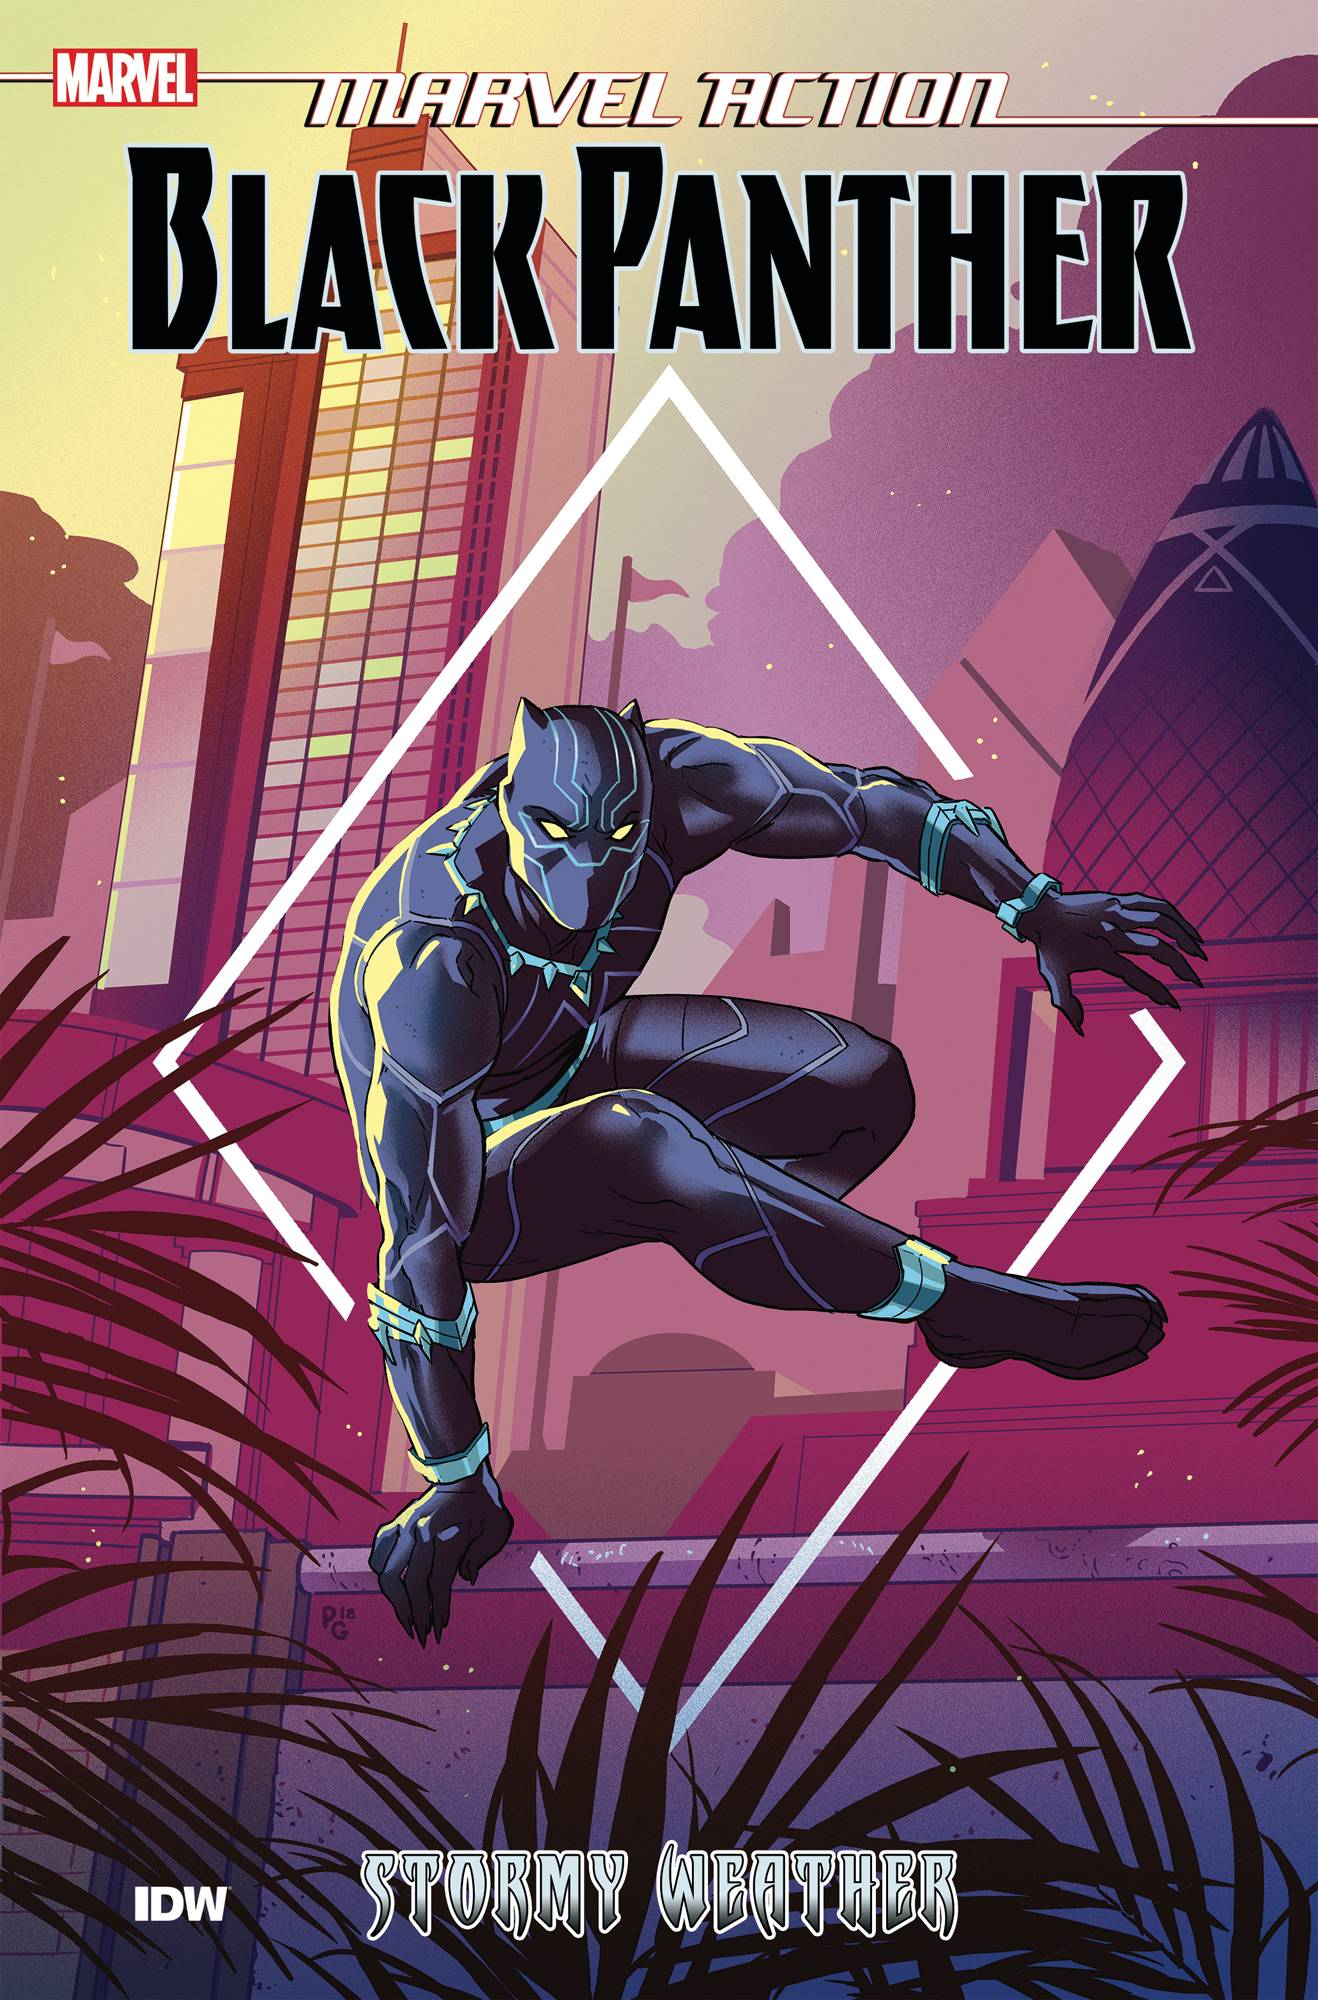 Marvel Action Black Panther TP Vol. 1 Stormy Weather